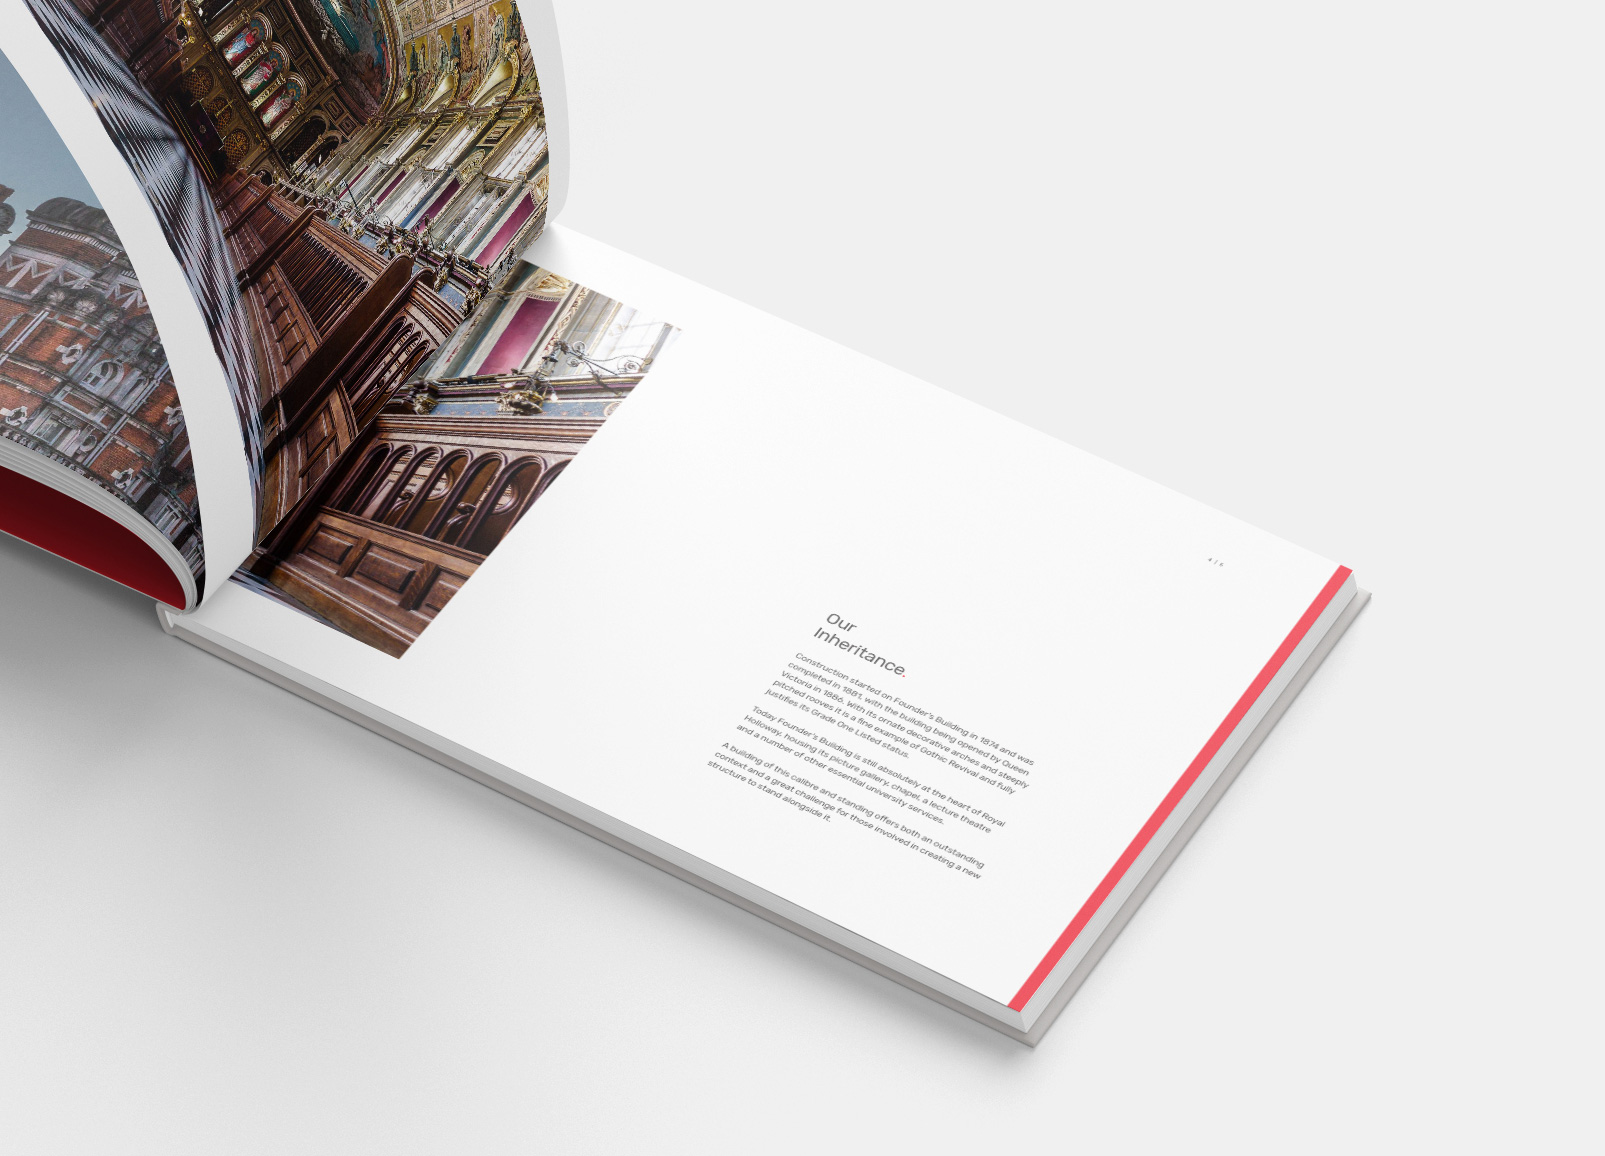 Our book to show off the Emily Wilding Davidson Library at Royal Holloway University